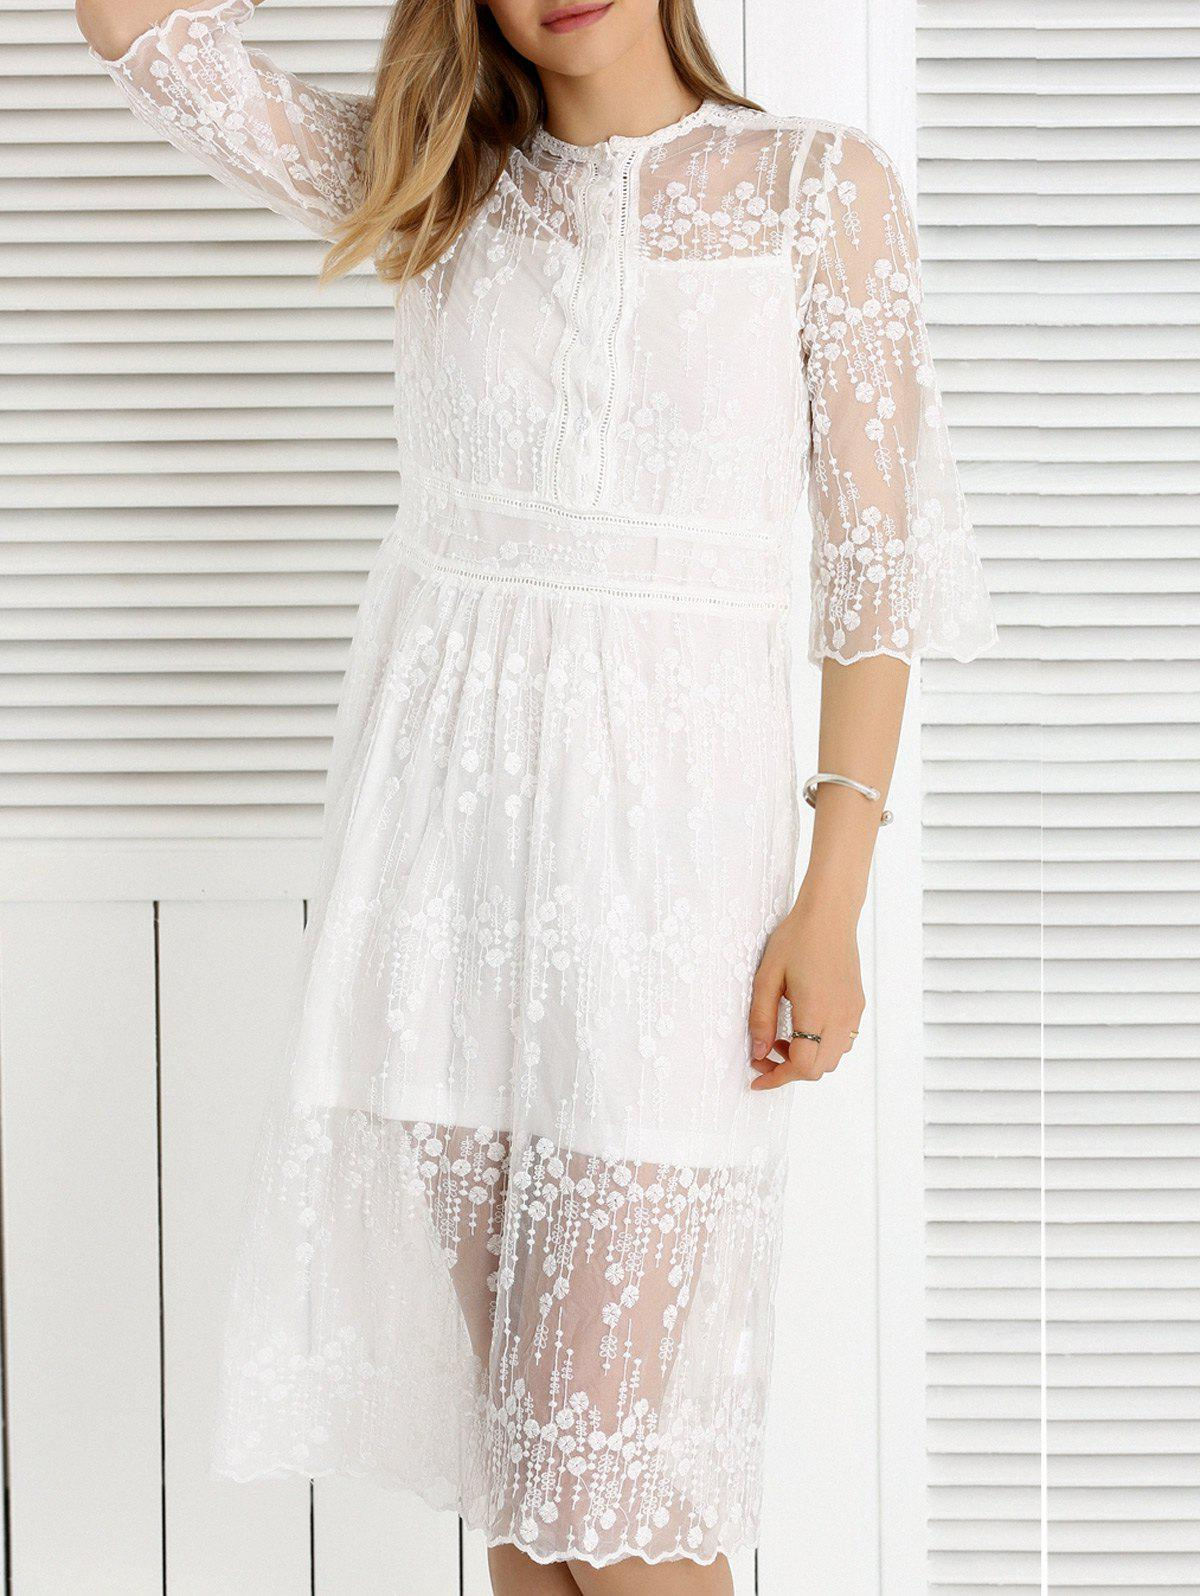 Sweet Cami Tank Top + See-Through Embroidered Dress Women's Twinset - WHITE M